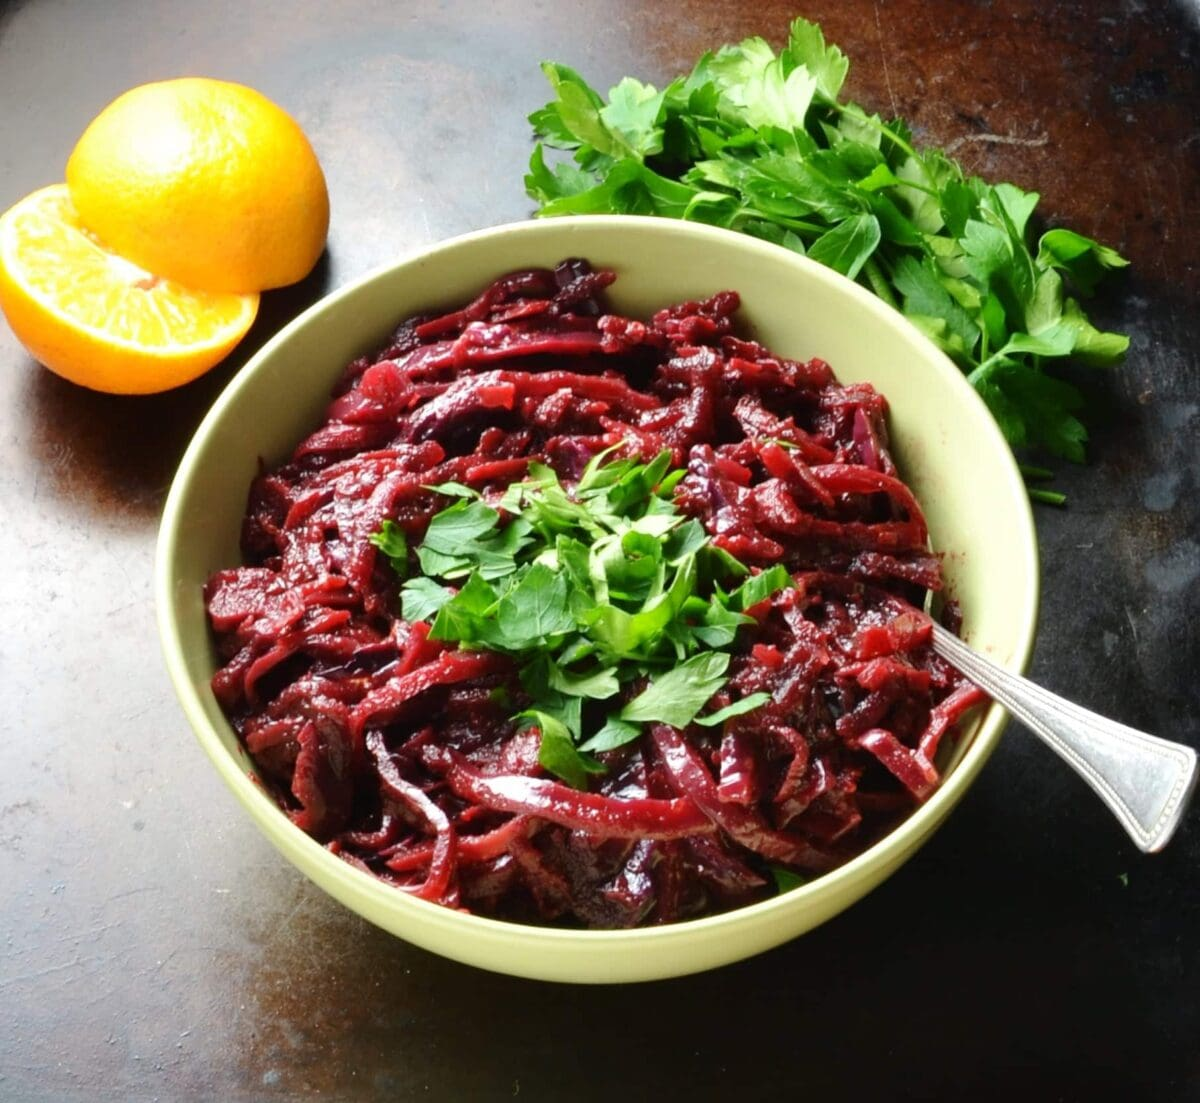 Braised red cabbage in green bowl with spoon and clementine and herbs in background.